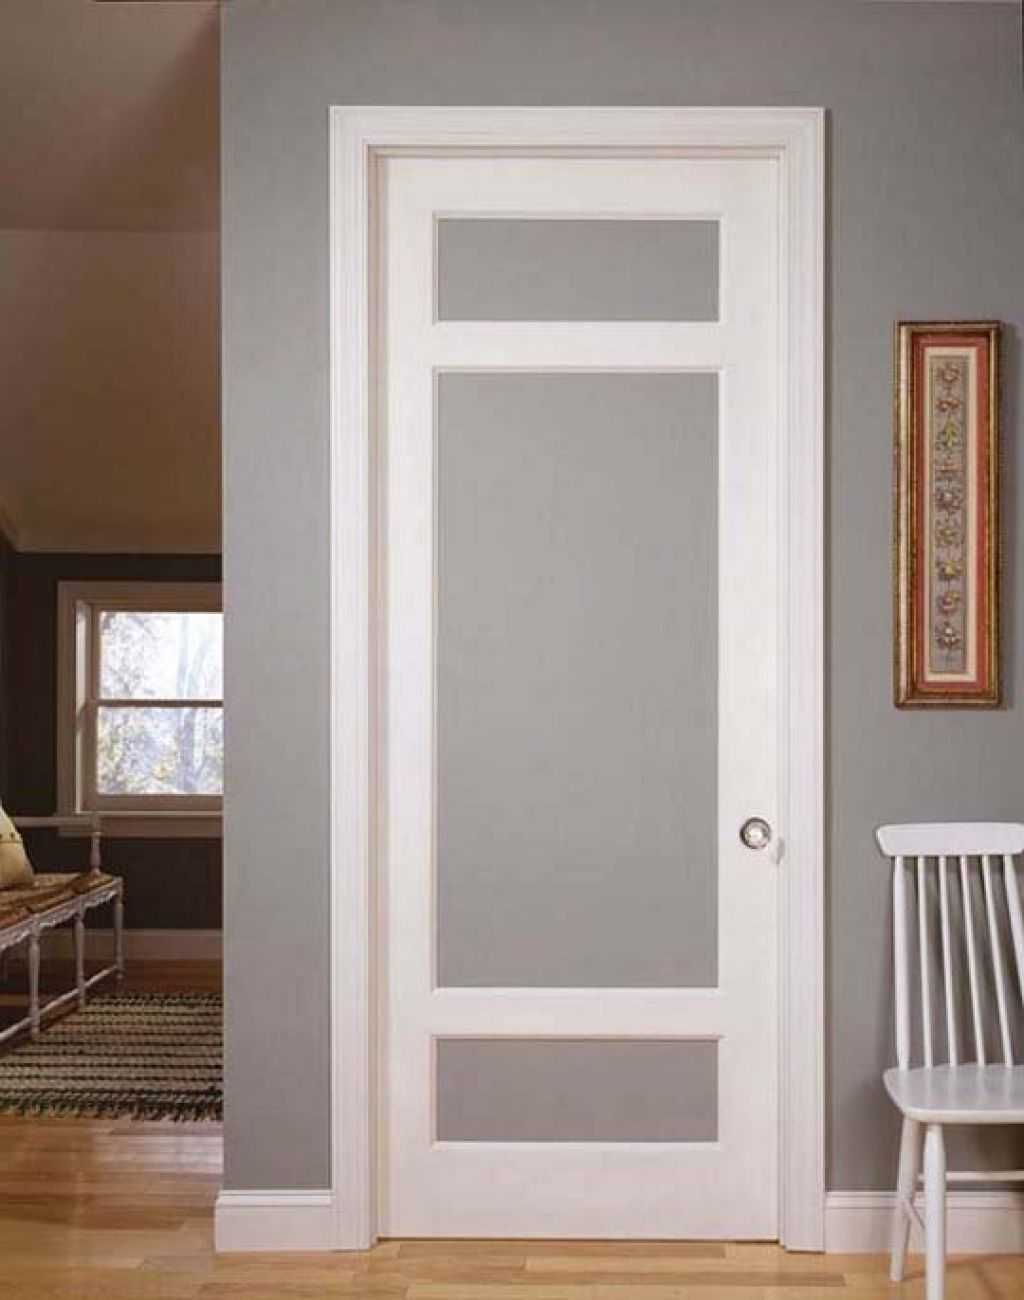 How To Decorate Interior Doors With Frosted Glass In 2020 Doors